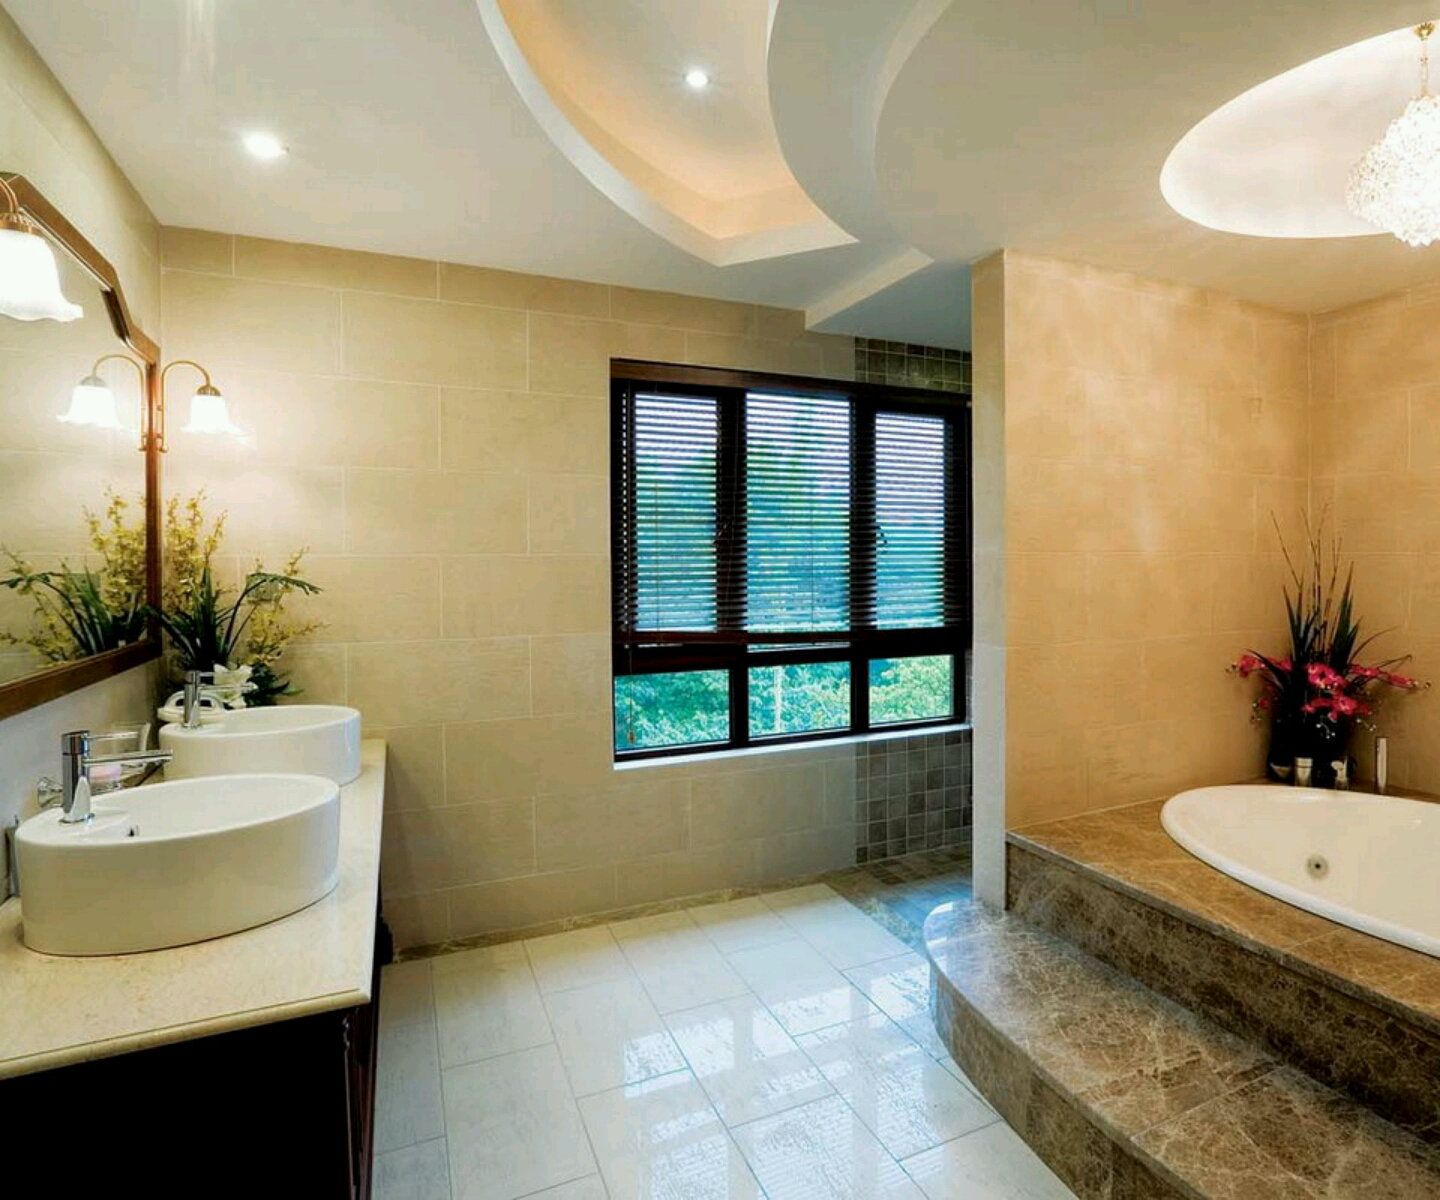 new home designs latest ultra modern washroom designs ideas On home washroom design